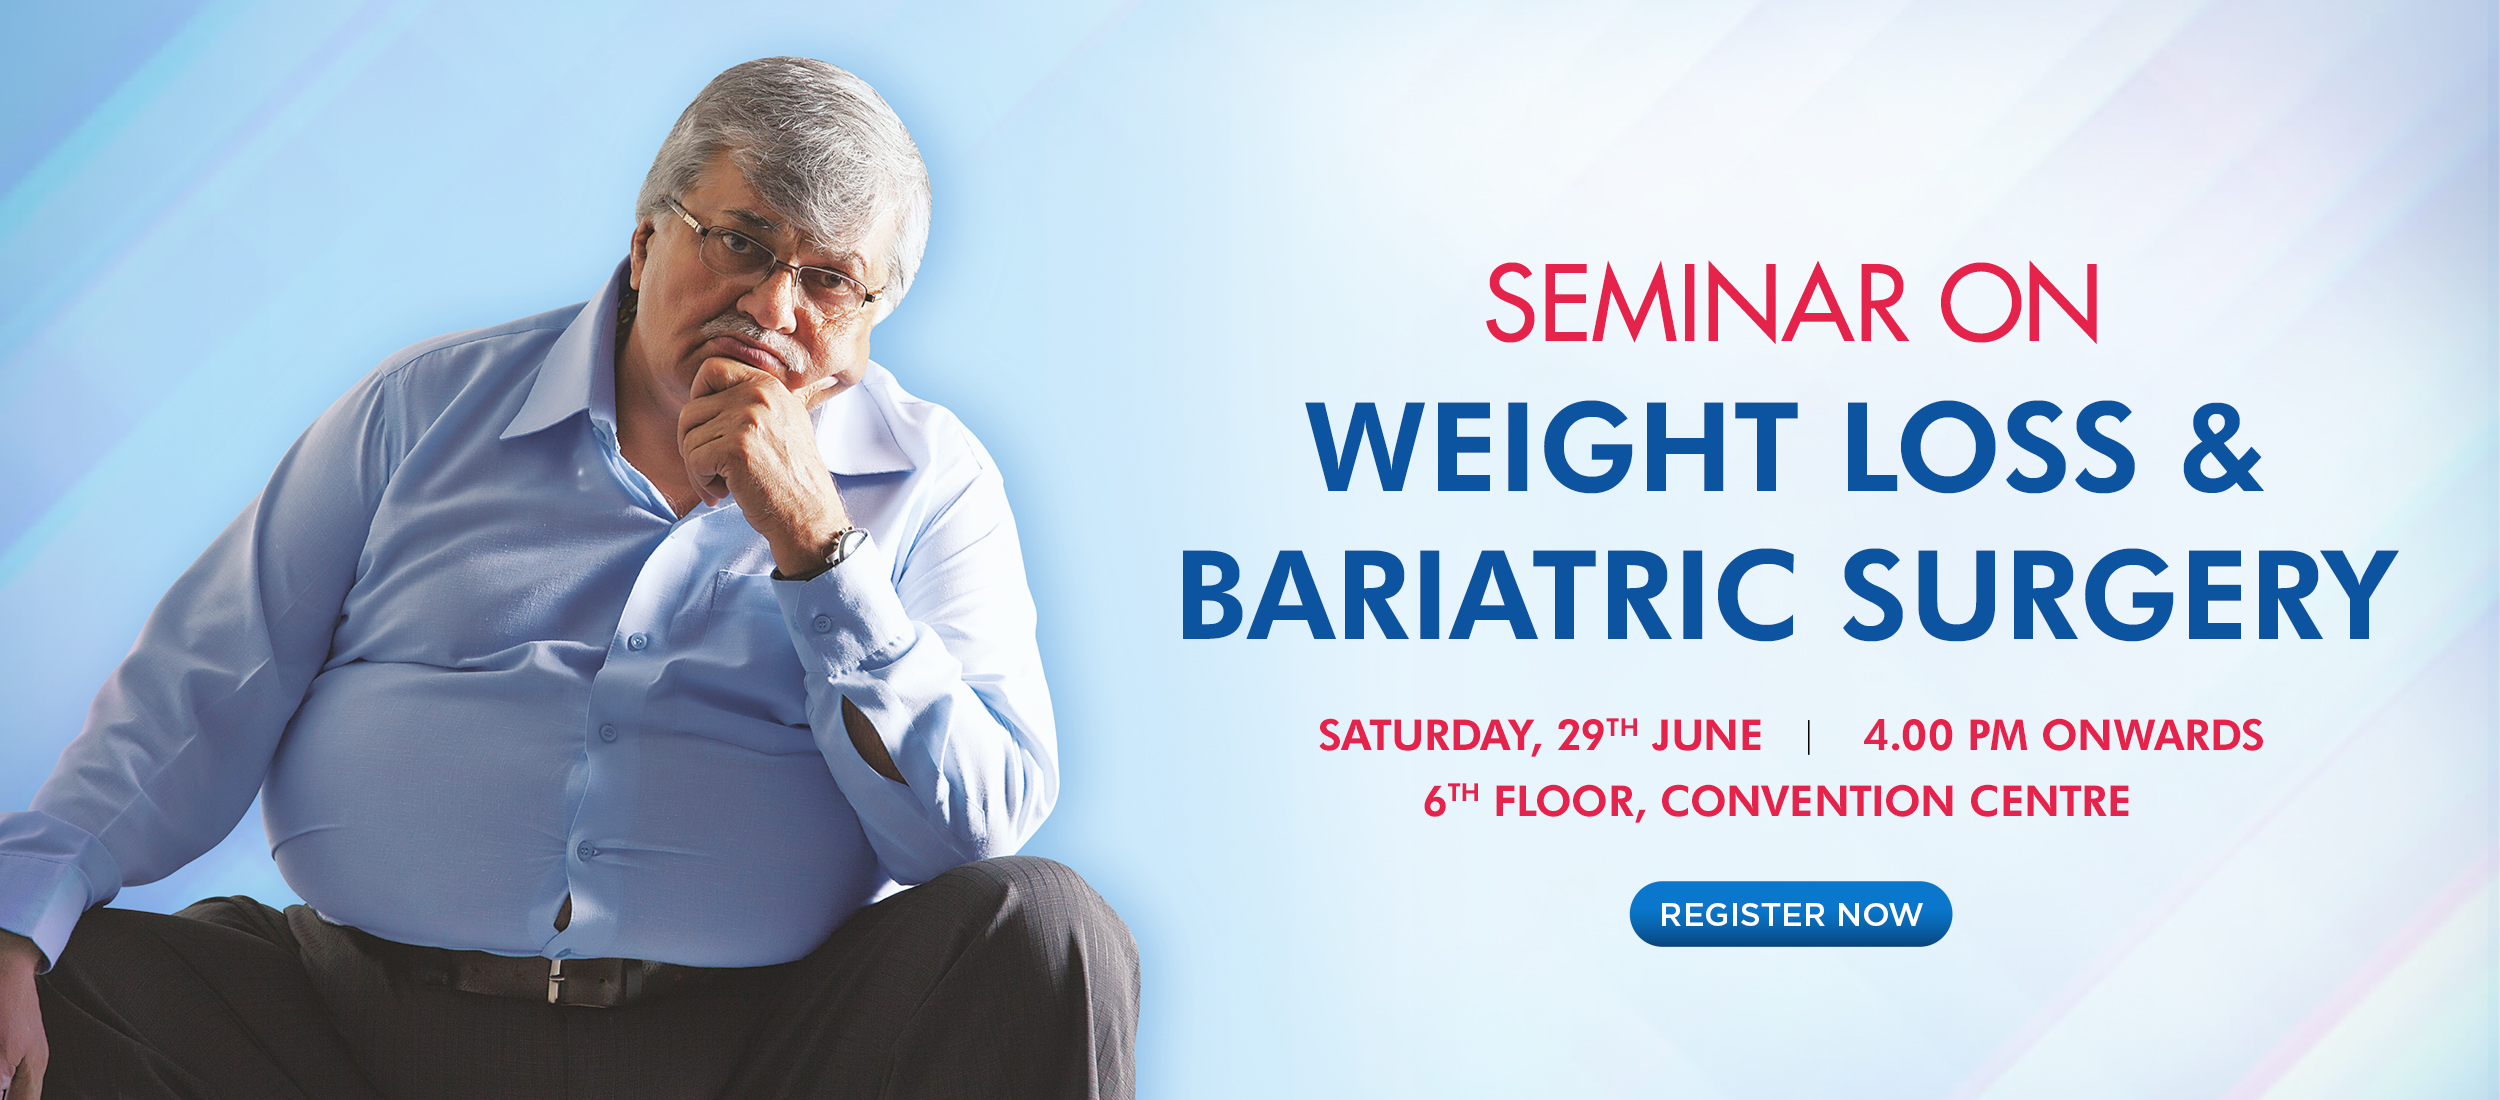 KDAH - Seminar on Weight Loss and Bariatric Surgery